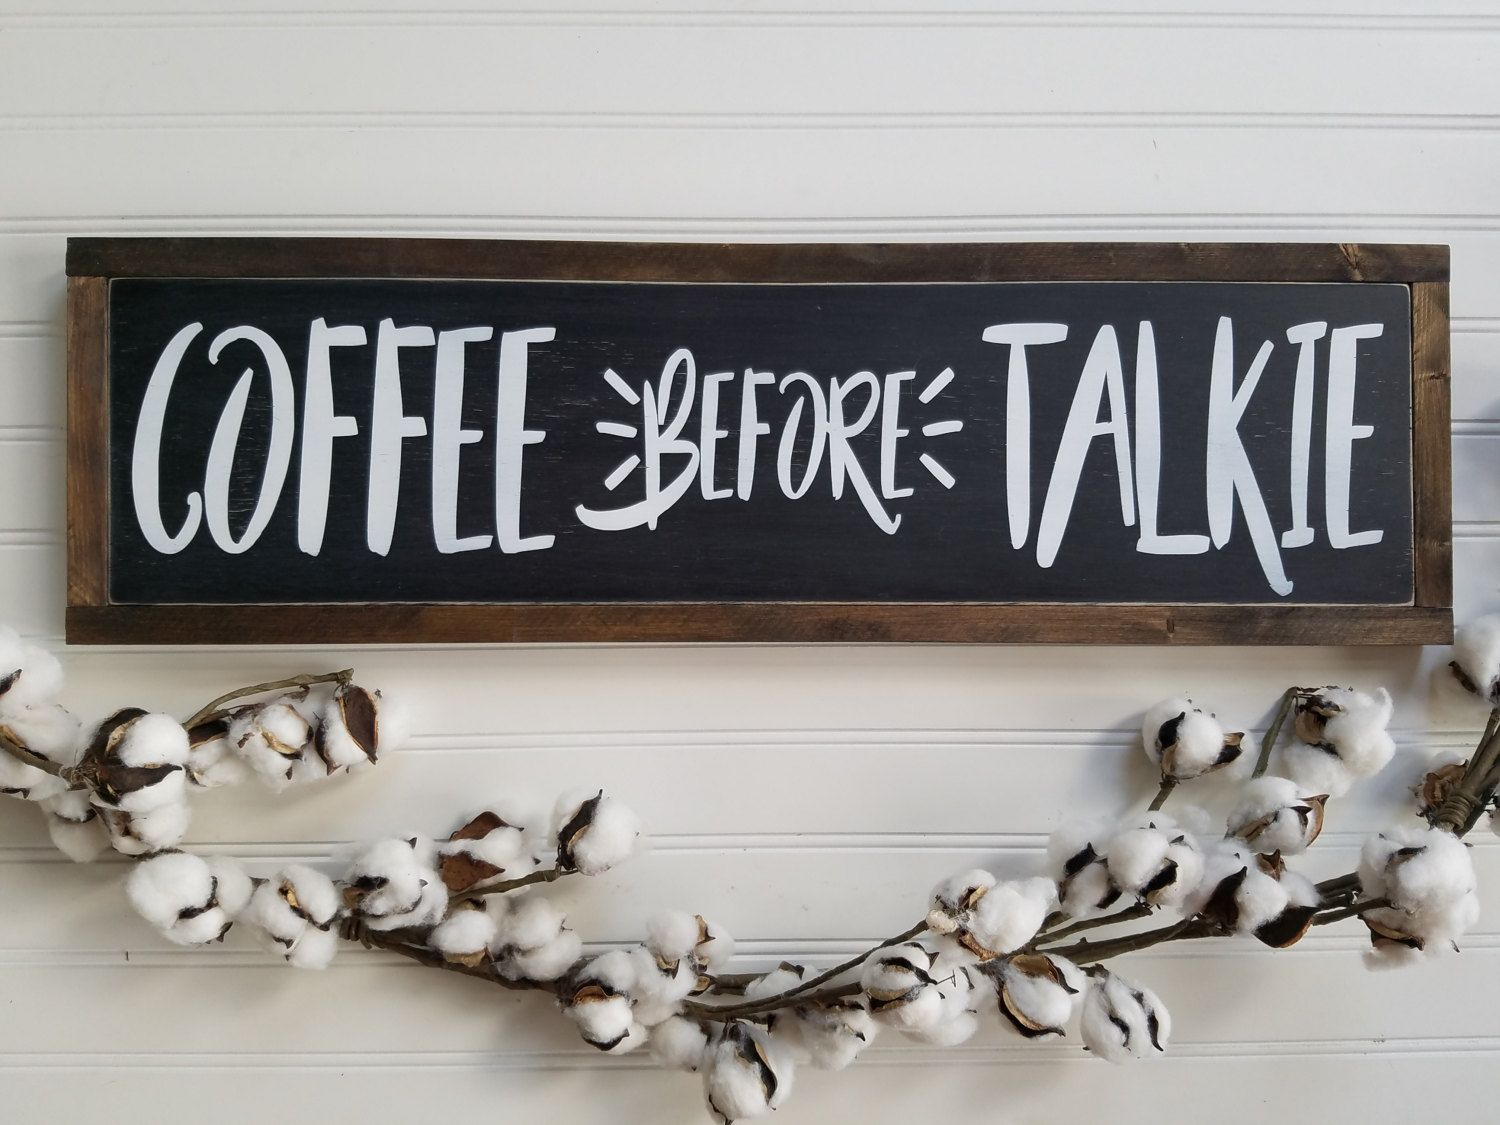 Coffee Signs Kitchen Decor Kitchen Sign Coffee Before Talkie Coffee Sign Housewarming Gift